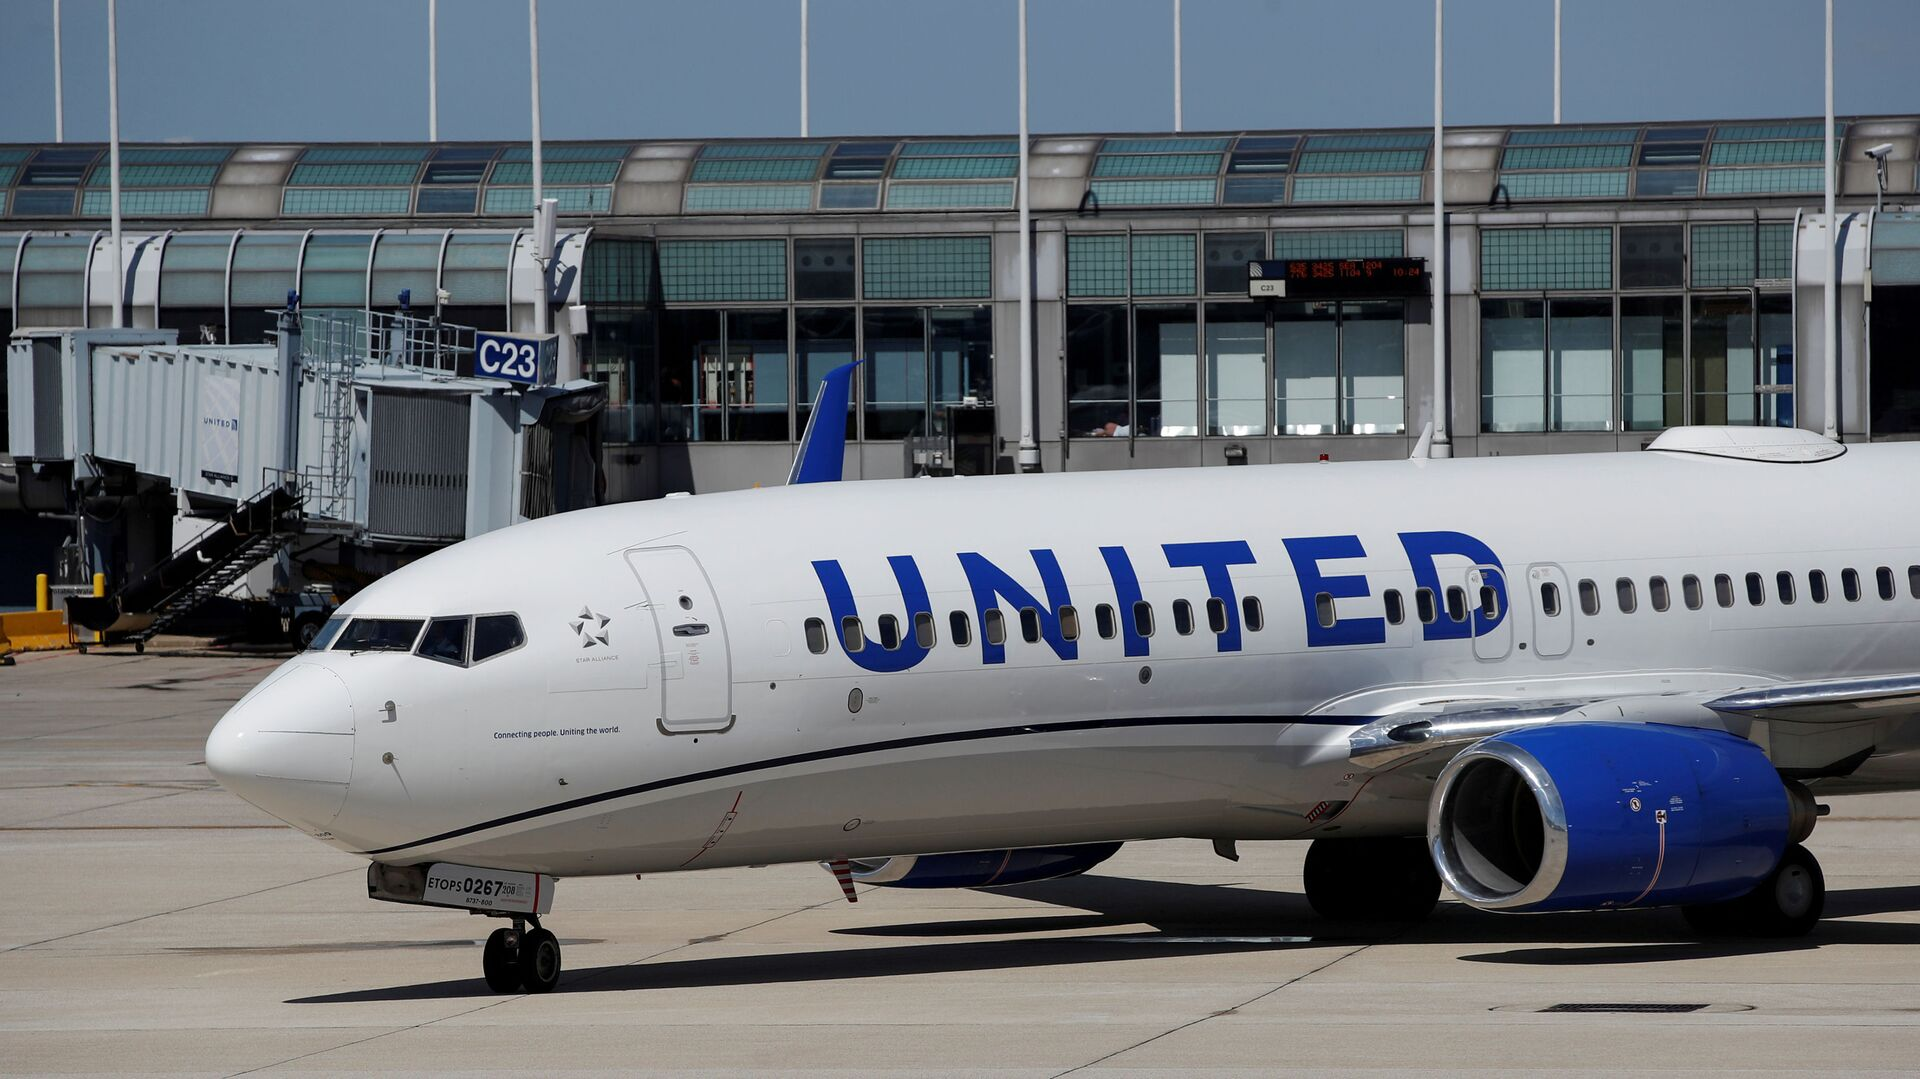 A United Airlines Boeing 737-800 arrives at O'Hare International Airport in Chicago, Illinois, U.S. - Sputnik International, 1920, 26.07.2021